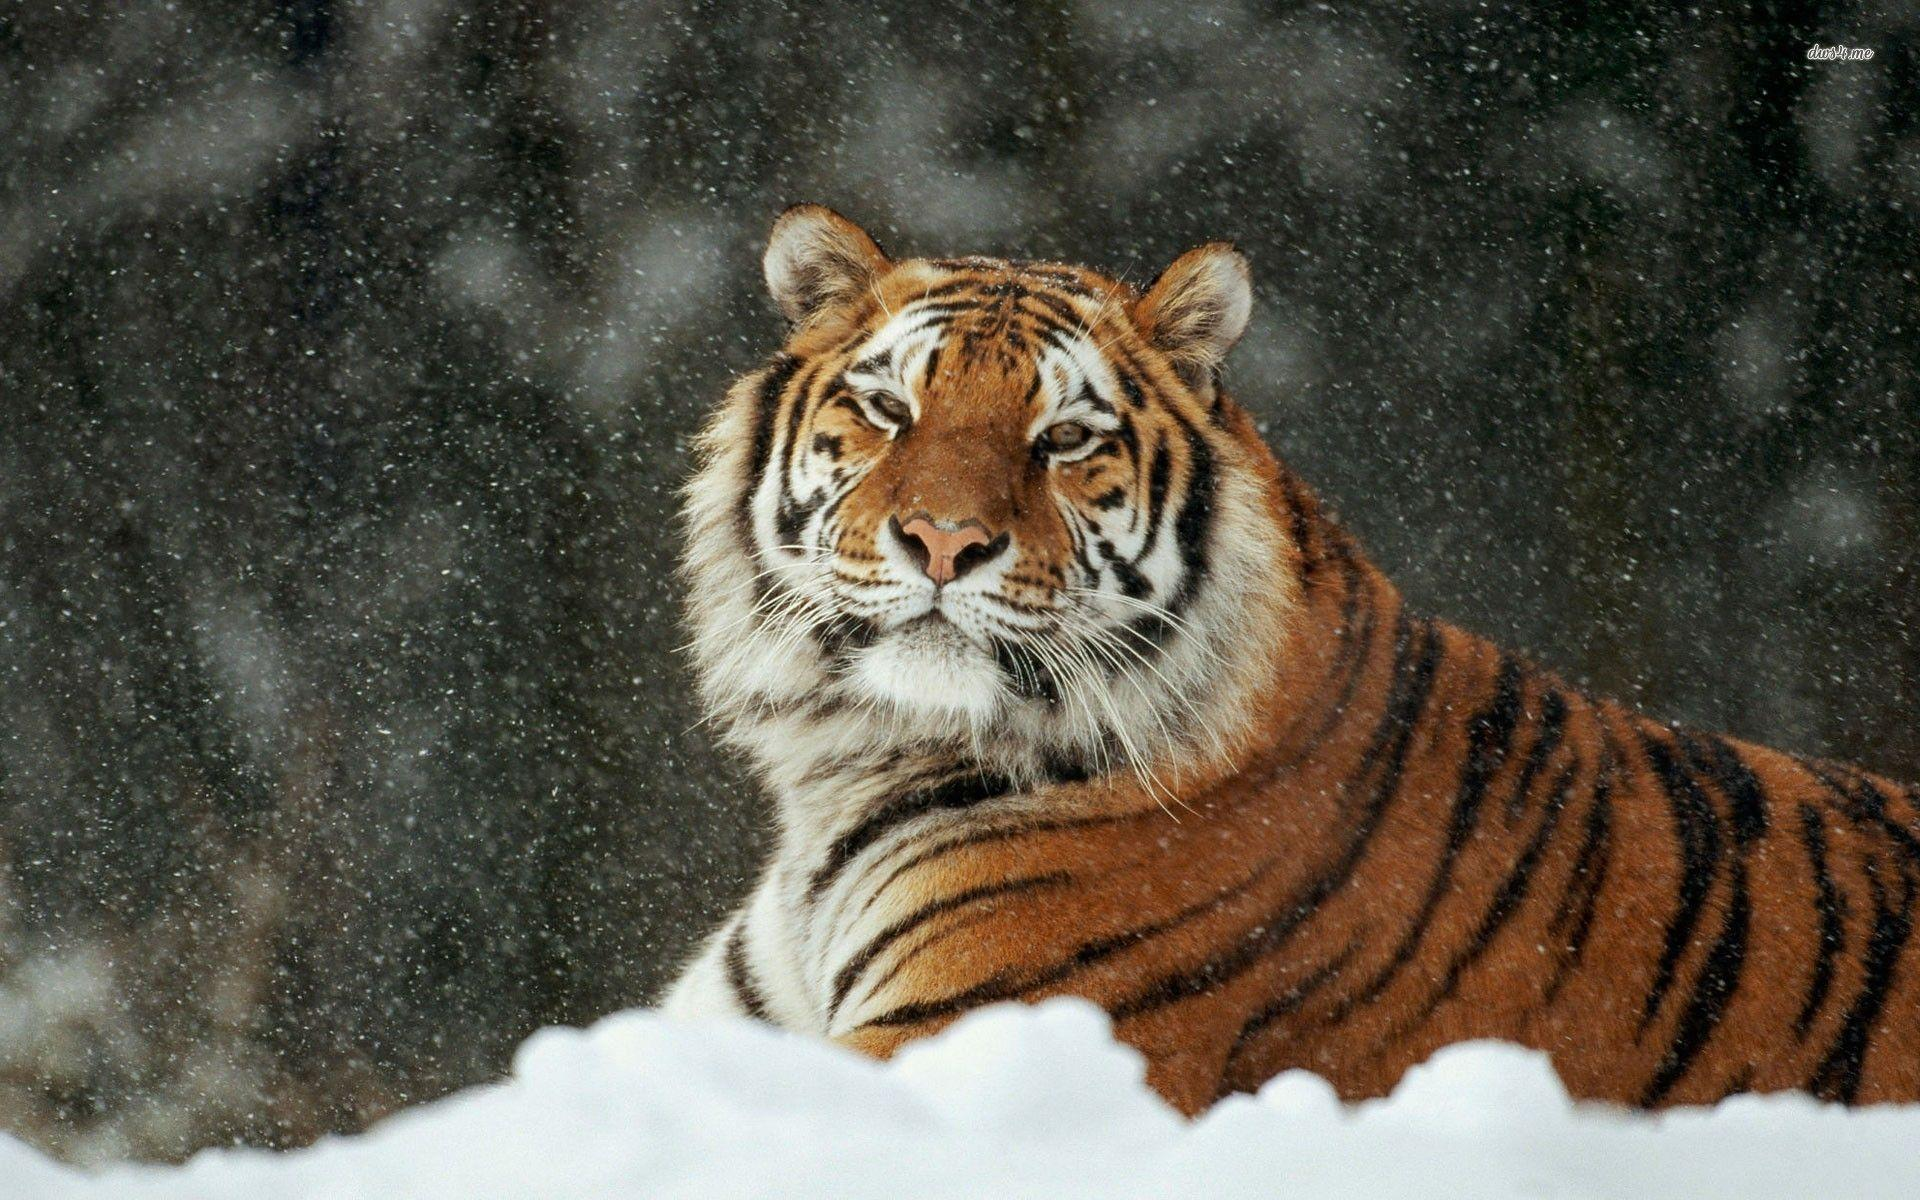 Siberian Tiger In The Snow Animal Wallpapers 1920x1200 px Free